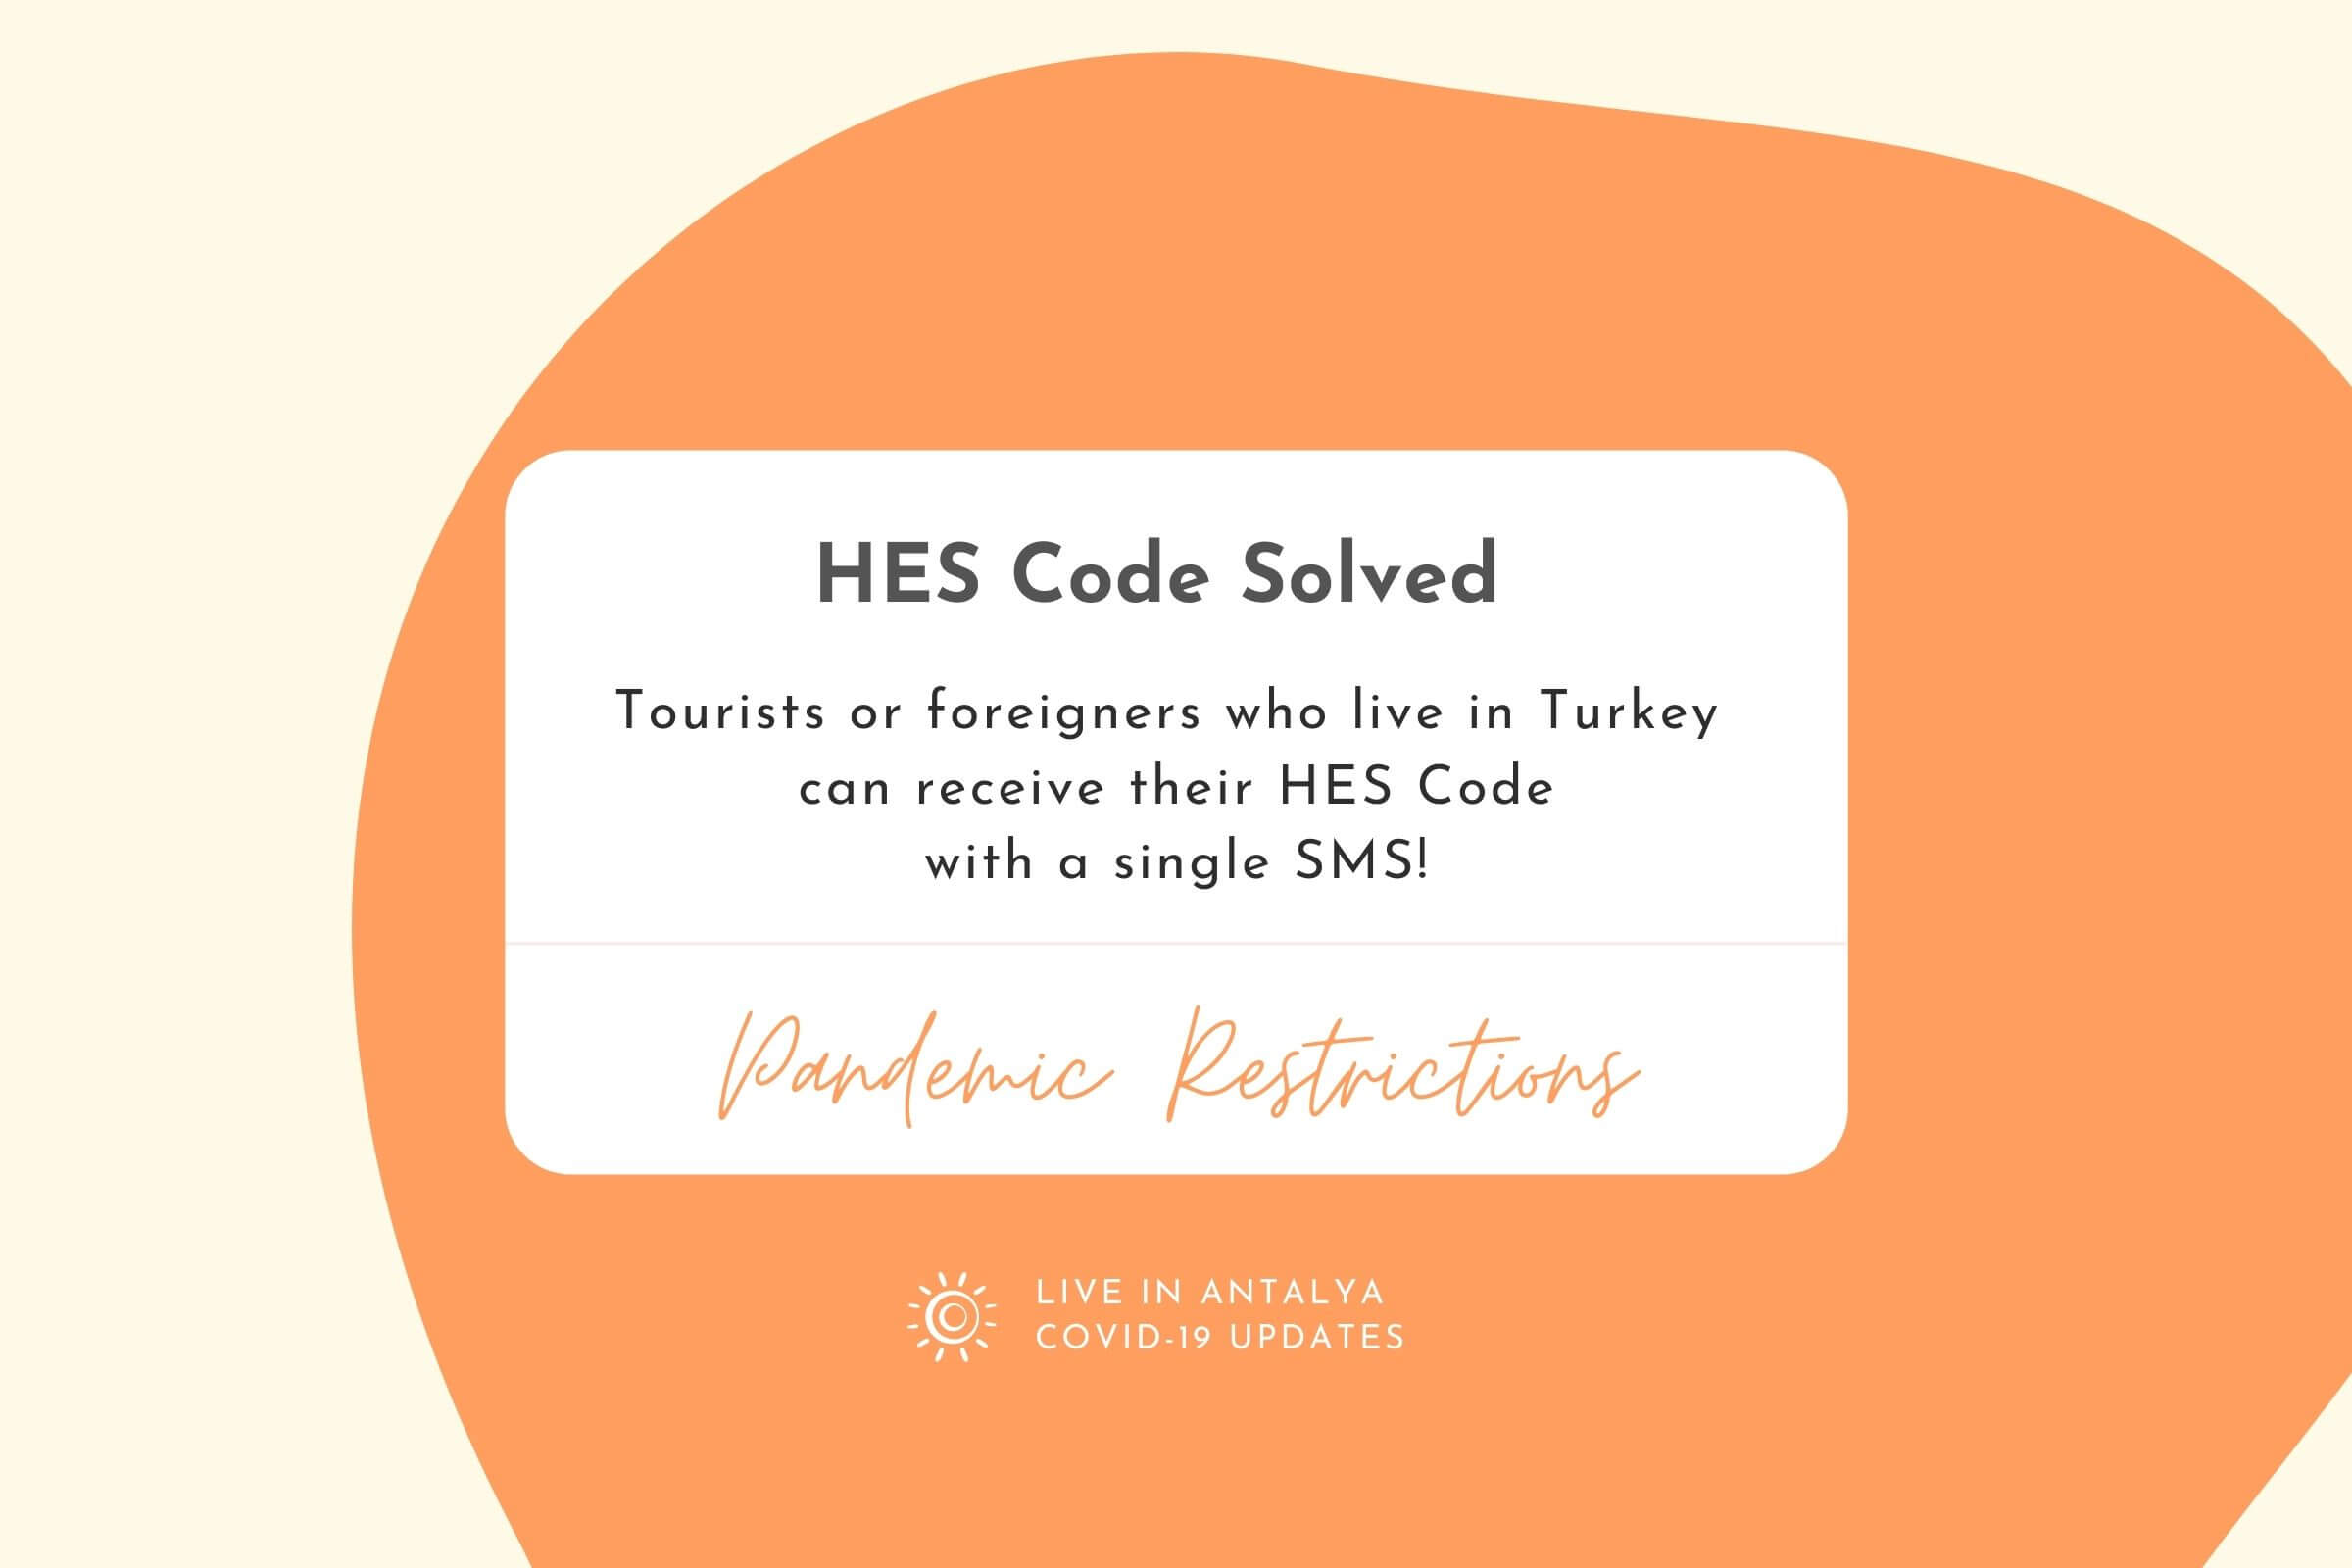 HES Code in Turkey